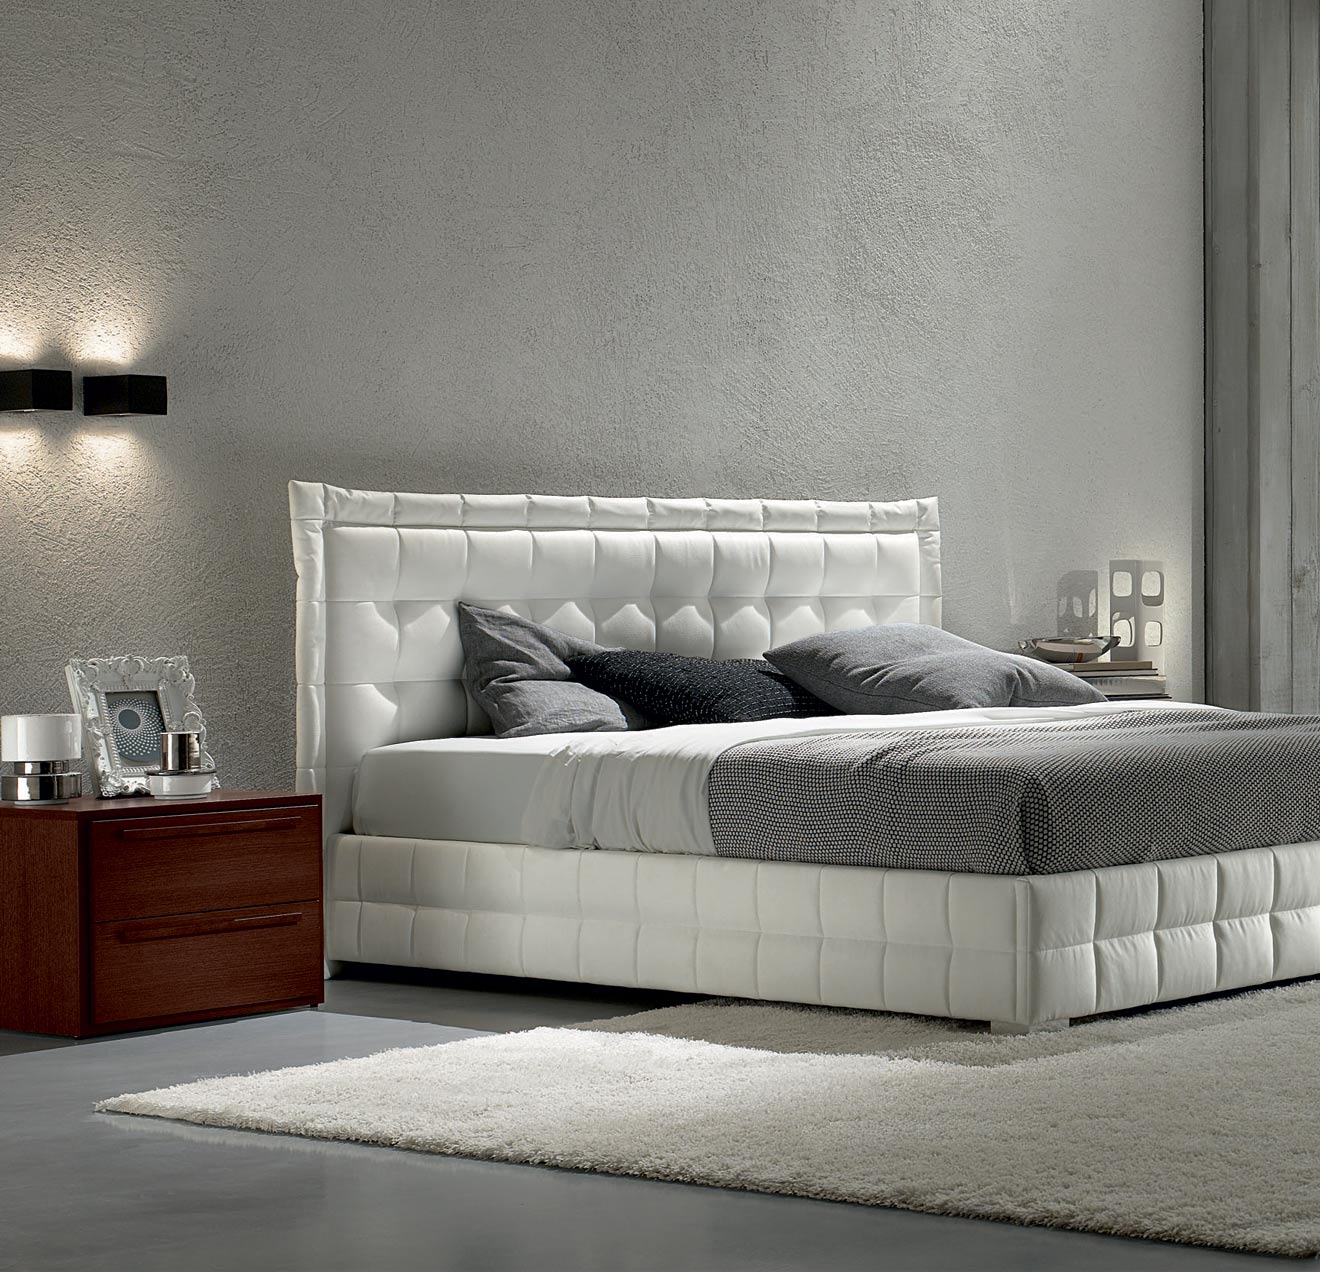 Custom Bedroom Furniture Designs With Image Of Bedroom